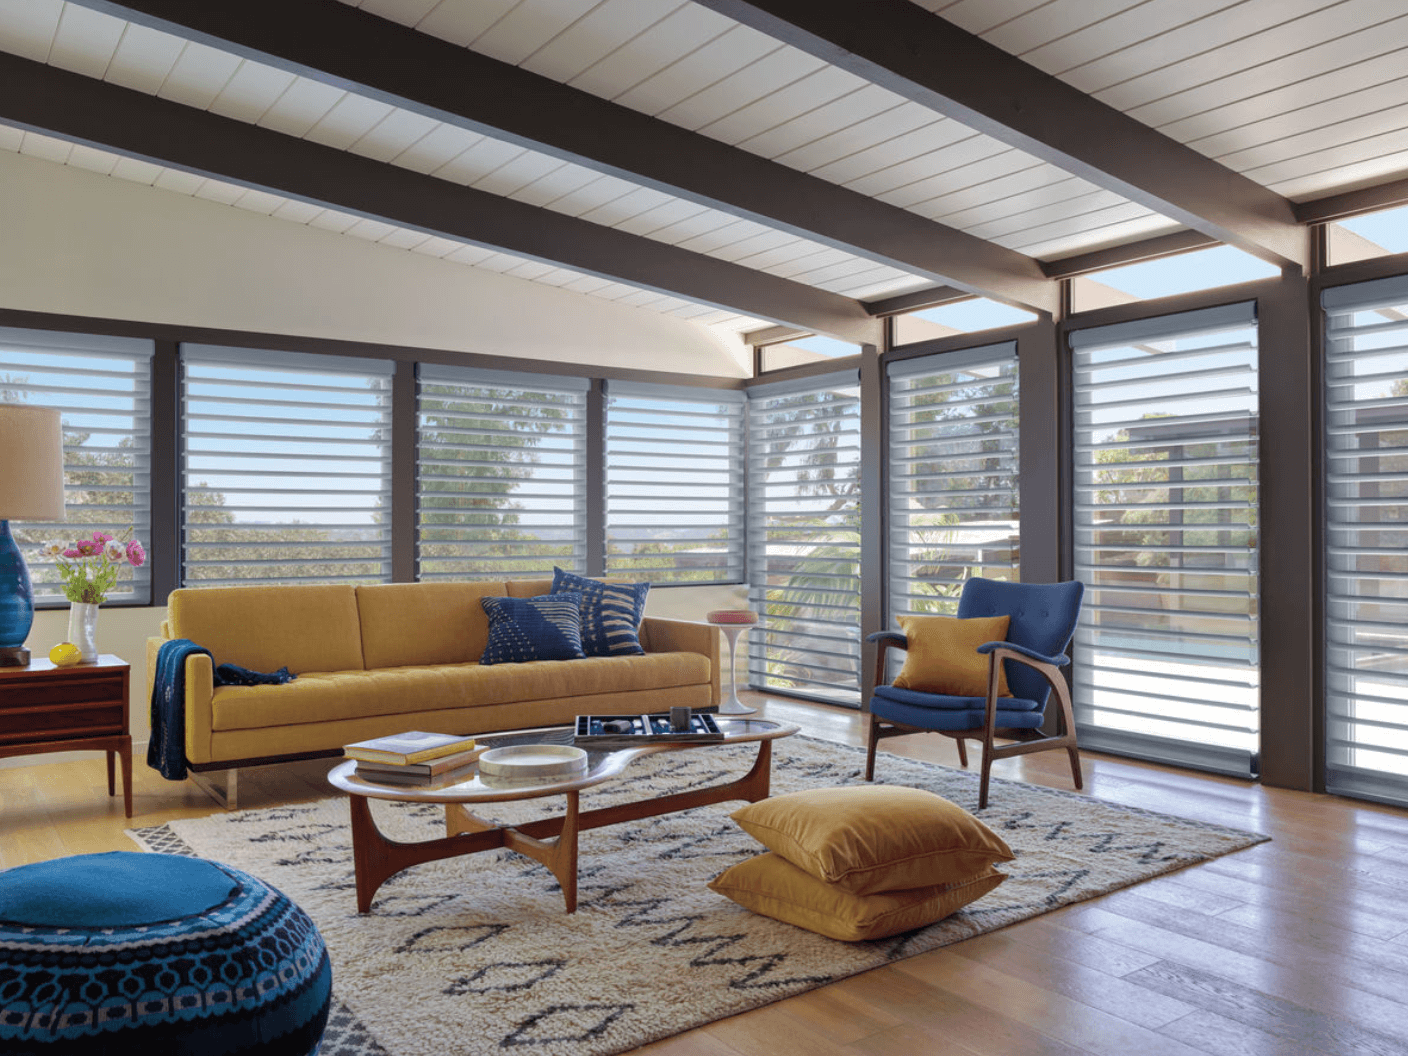 Sheer Shadings Can Bring Natural Light to Homes in Charlotte, North Carolina (NC)